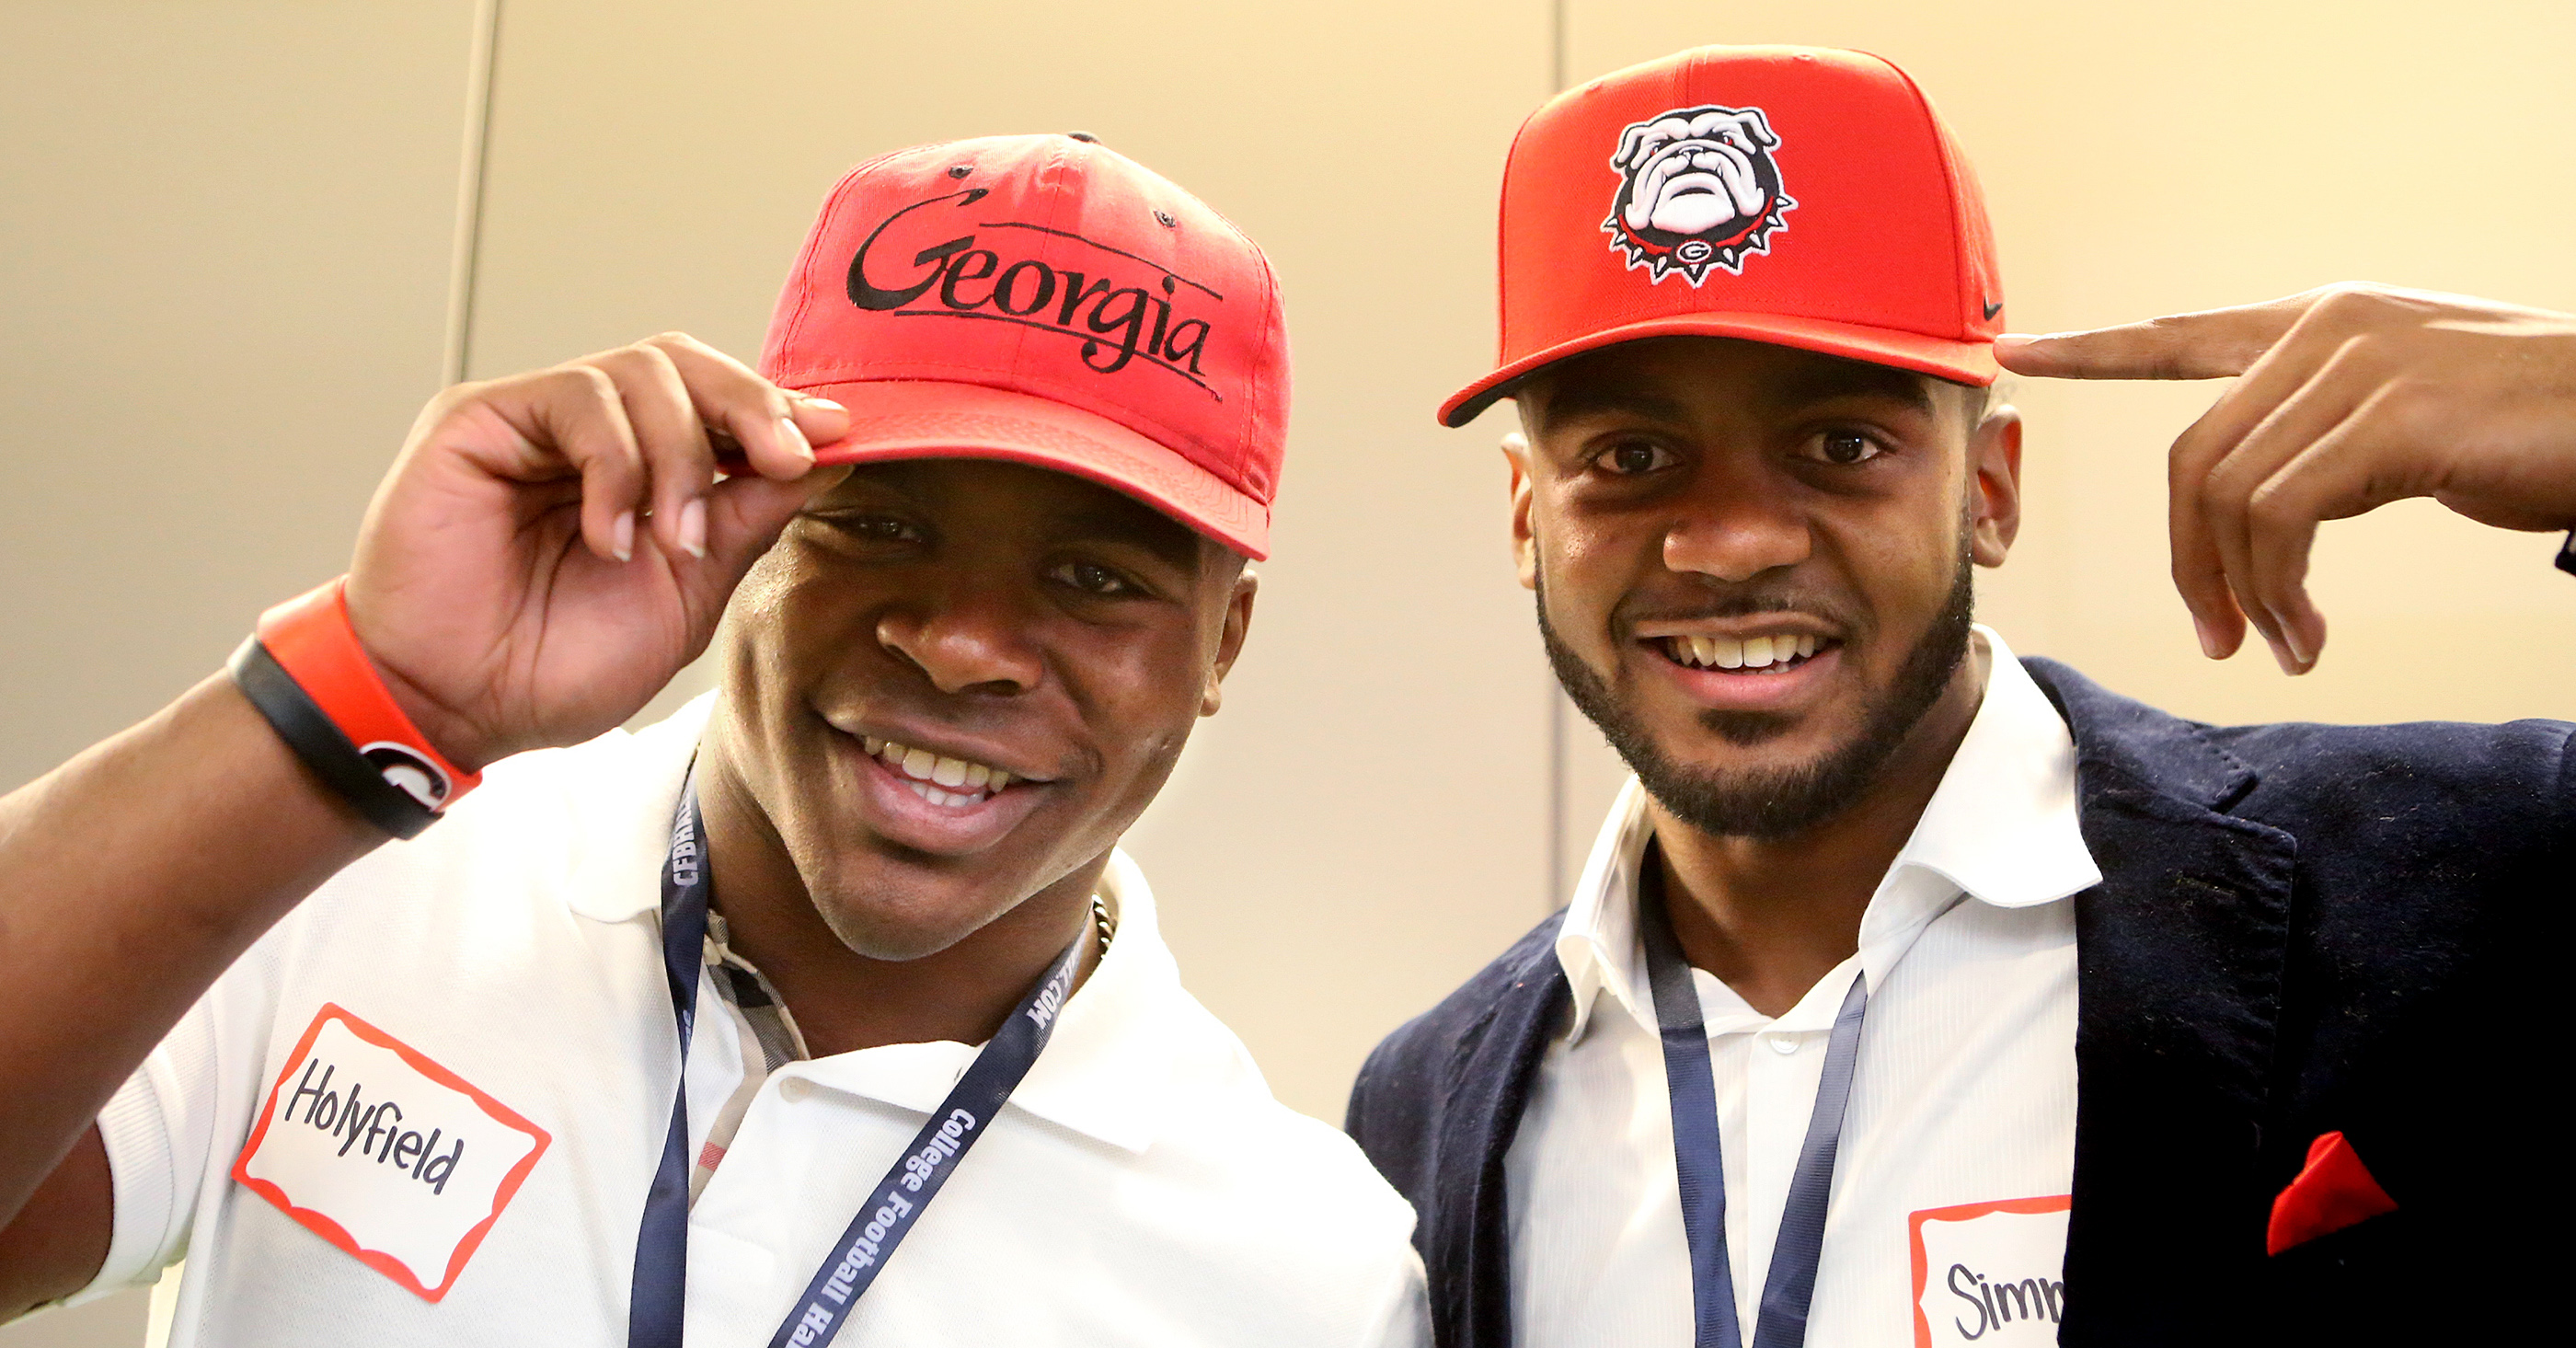 Woodward High School running back Elijah Holyfield, left, and McEachern High School wide receiver Tyler Simmons, don University of Georgia caps during national signing day at the College Football Hall of Fame, Wednesday, Feb. 3, 2016, in Atlanta. (Curtis